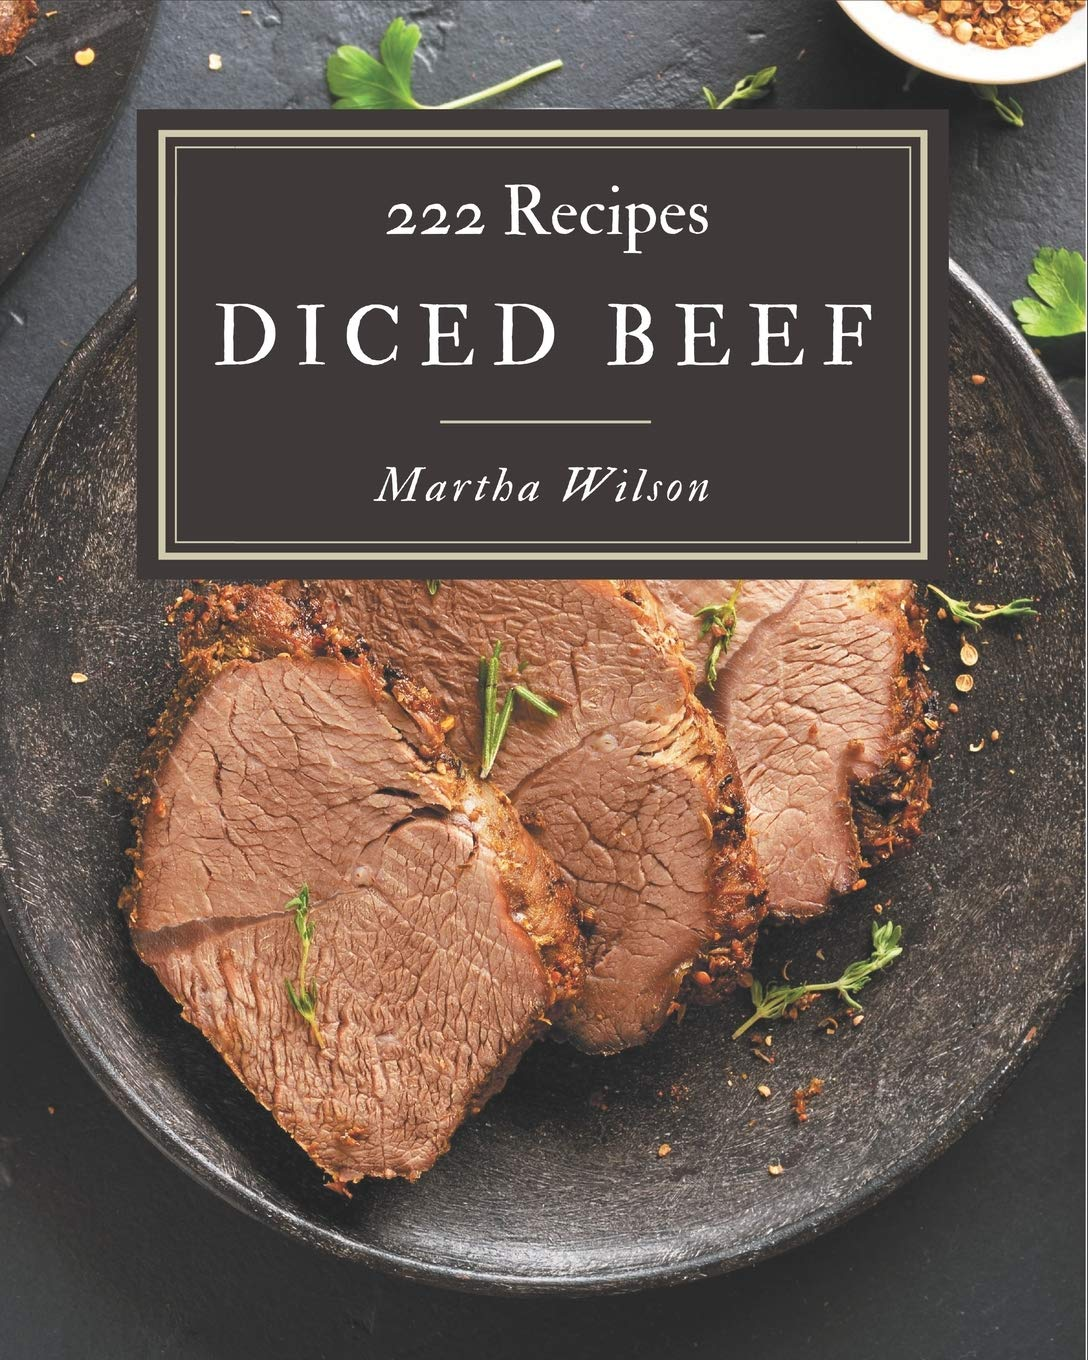 222 Diced Beef Recipes An Inspiring Diced Beef Cookbook For You Wilson Martha 9798677791932 Books